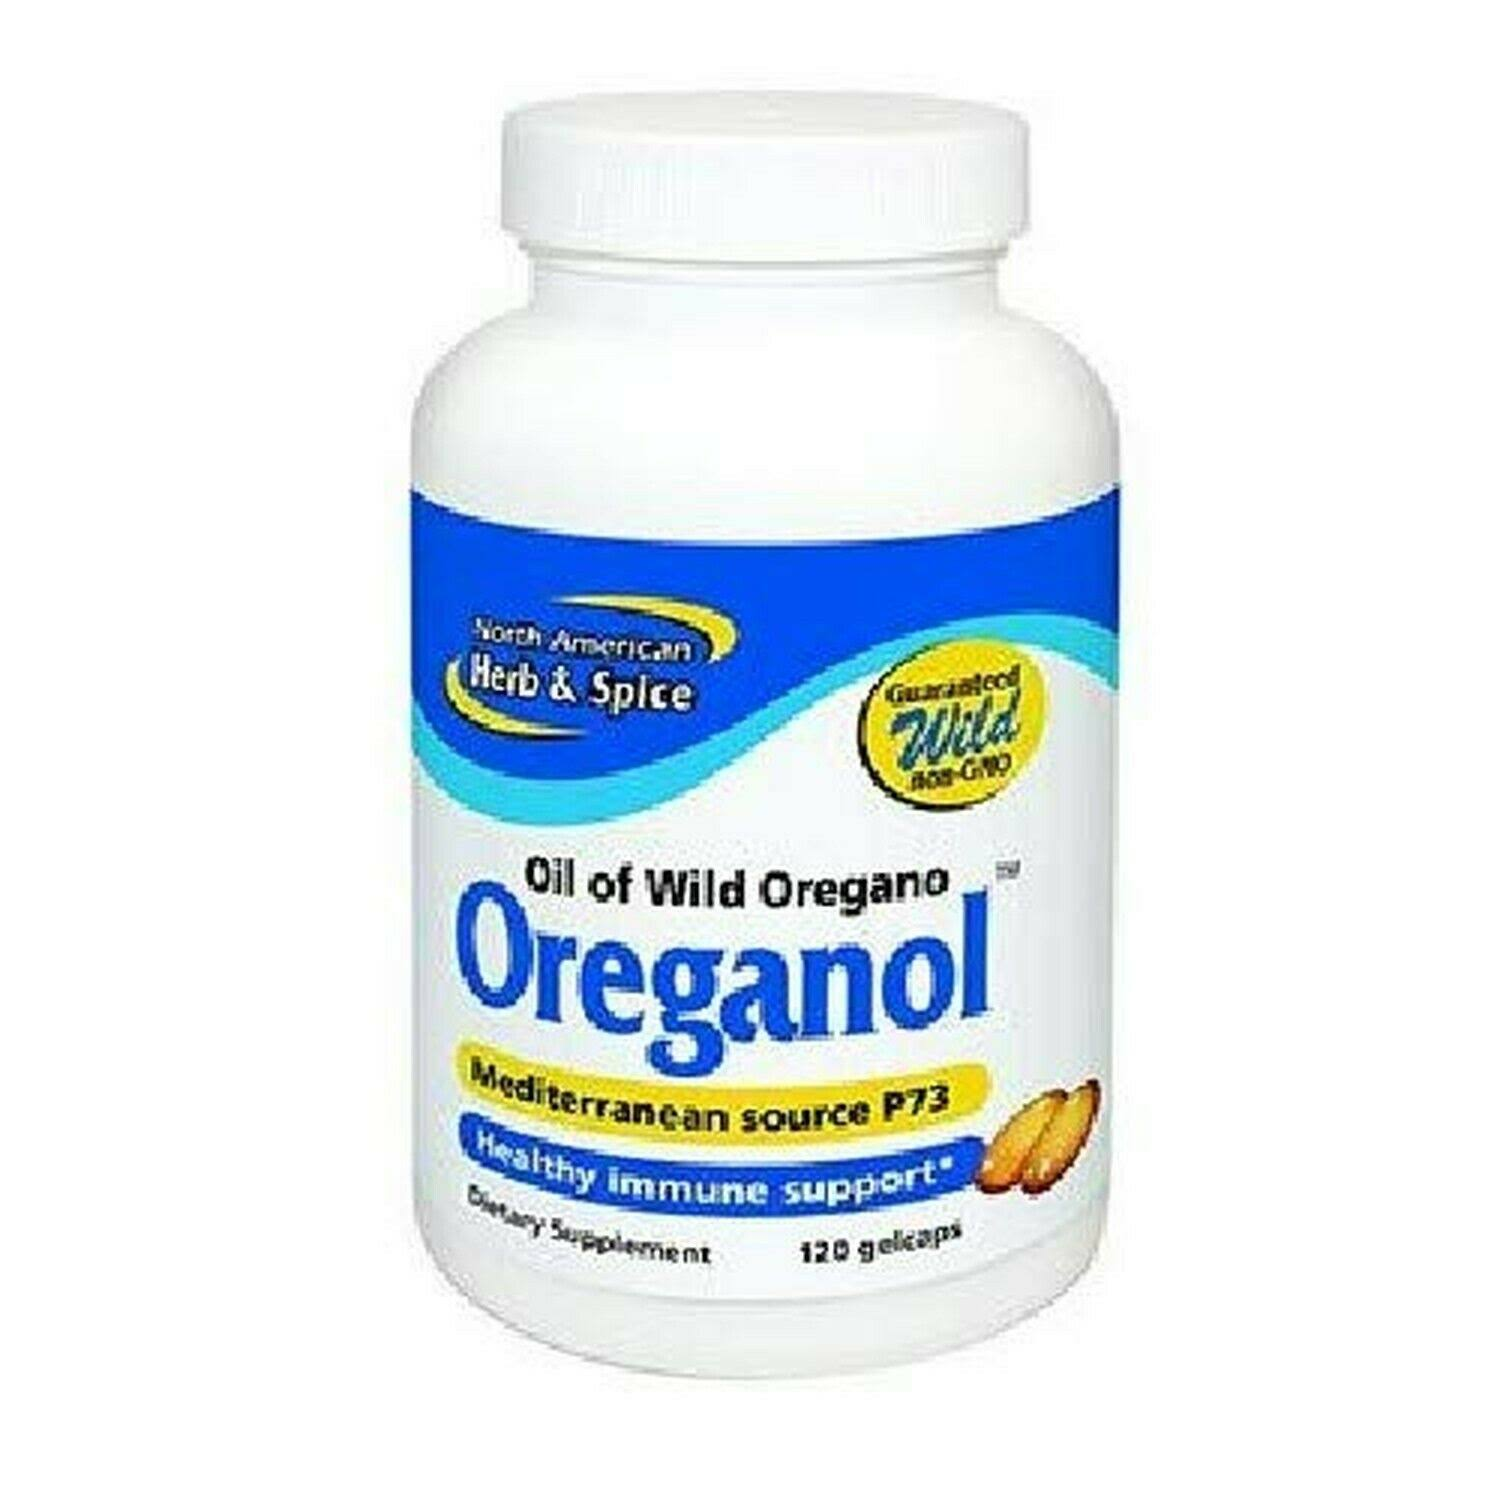 North American Herb and Spice Oreganol P73 Supplement - 120ct